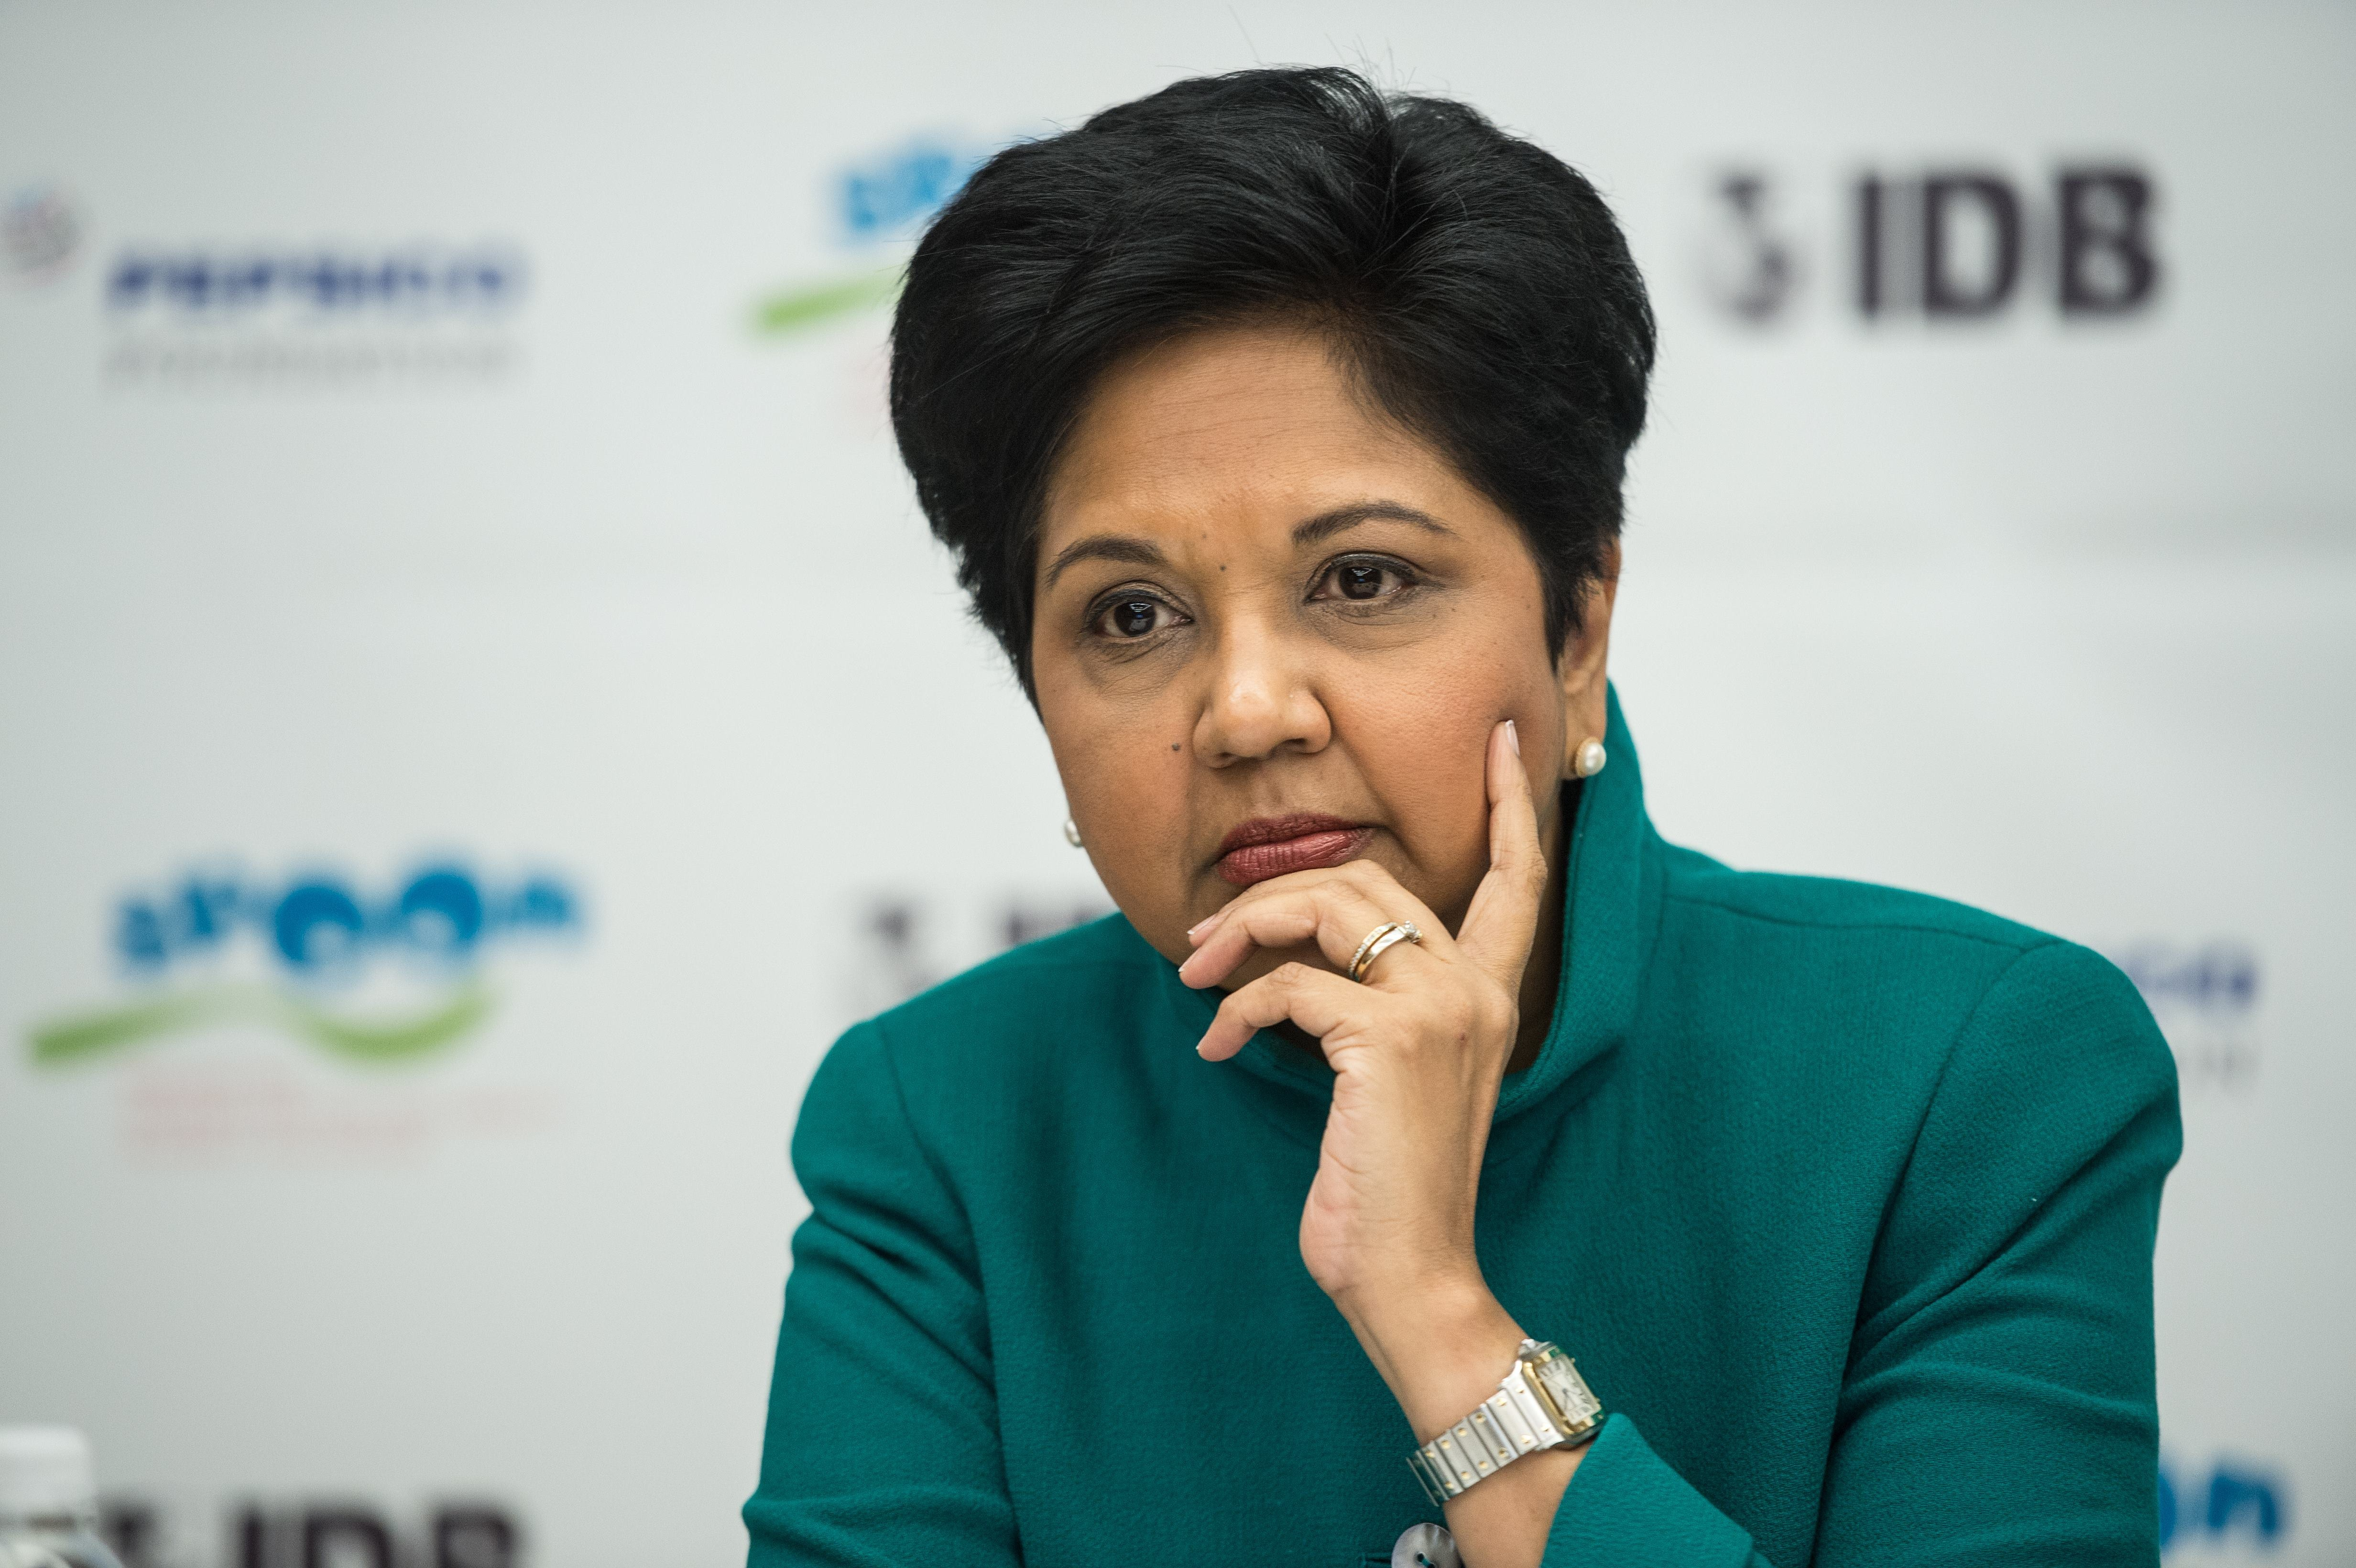 Pepsico CEO Indra Nooyi during the announcement of a partnership in Washington, D.C. on Oct. 15, 2014.